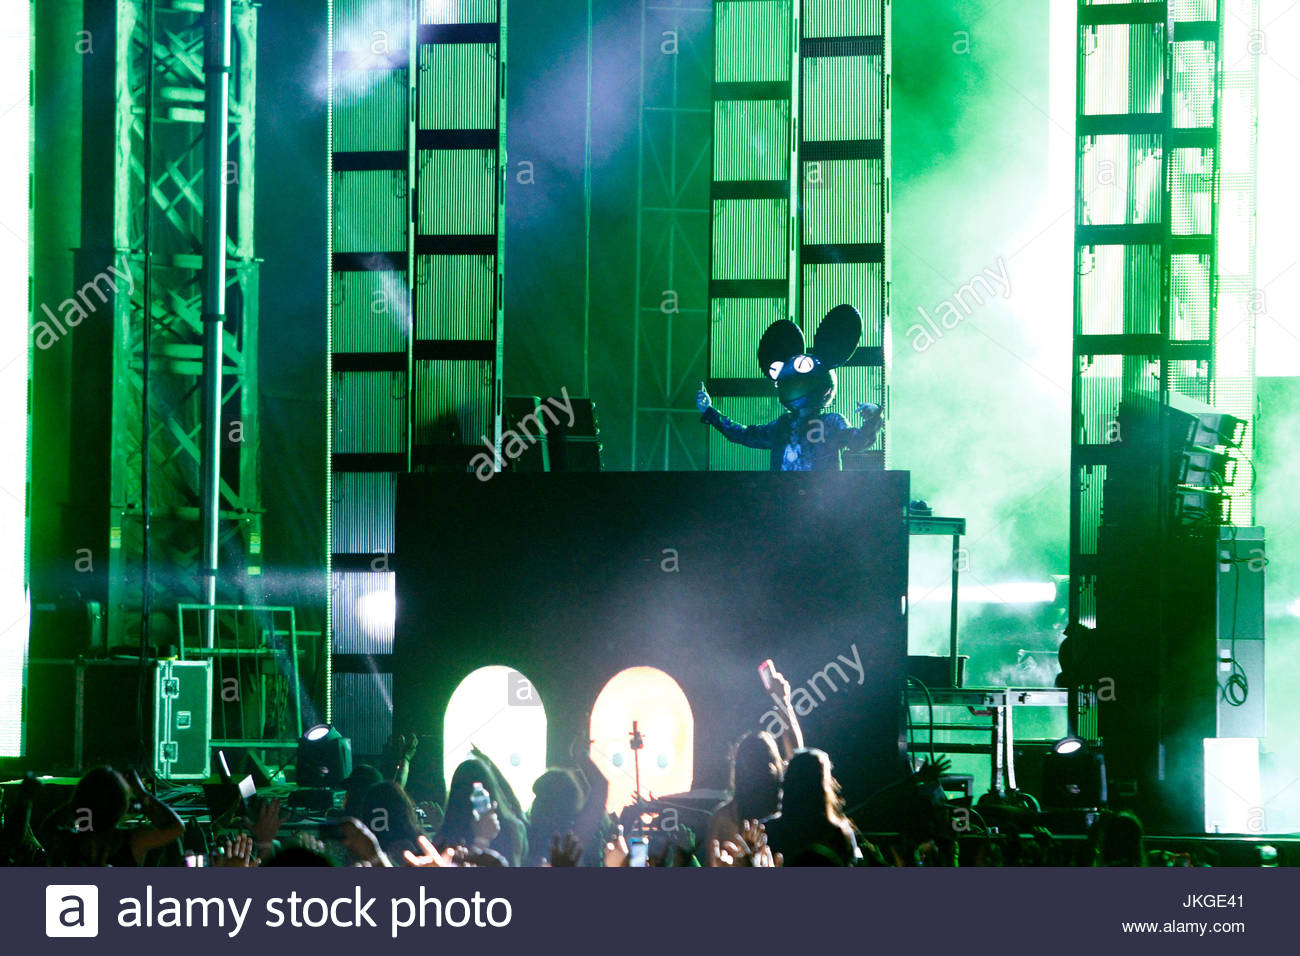 Deadmau5 aka joel thomas zimmerman deadmau5 also known as joel deadmau5 also known as joel thomas zimmerman performs in tampa headling the gift music festival in tampa fl deadmau5 made forbes magazine list of the negle Images